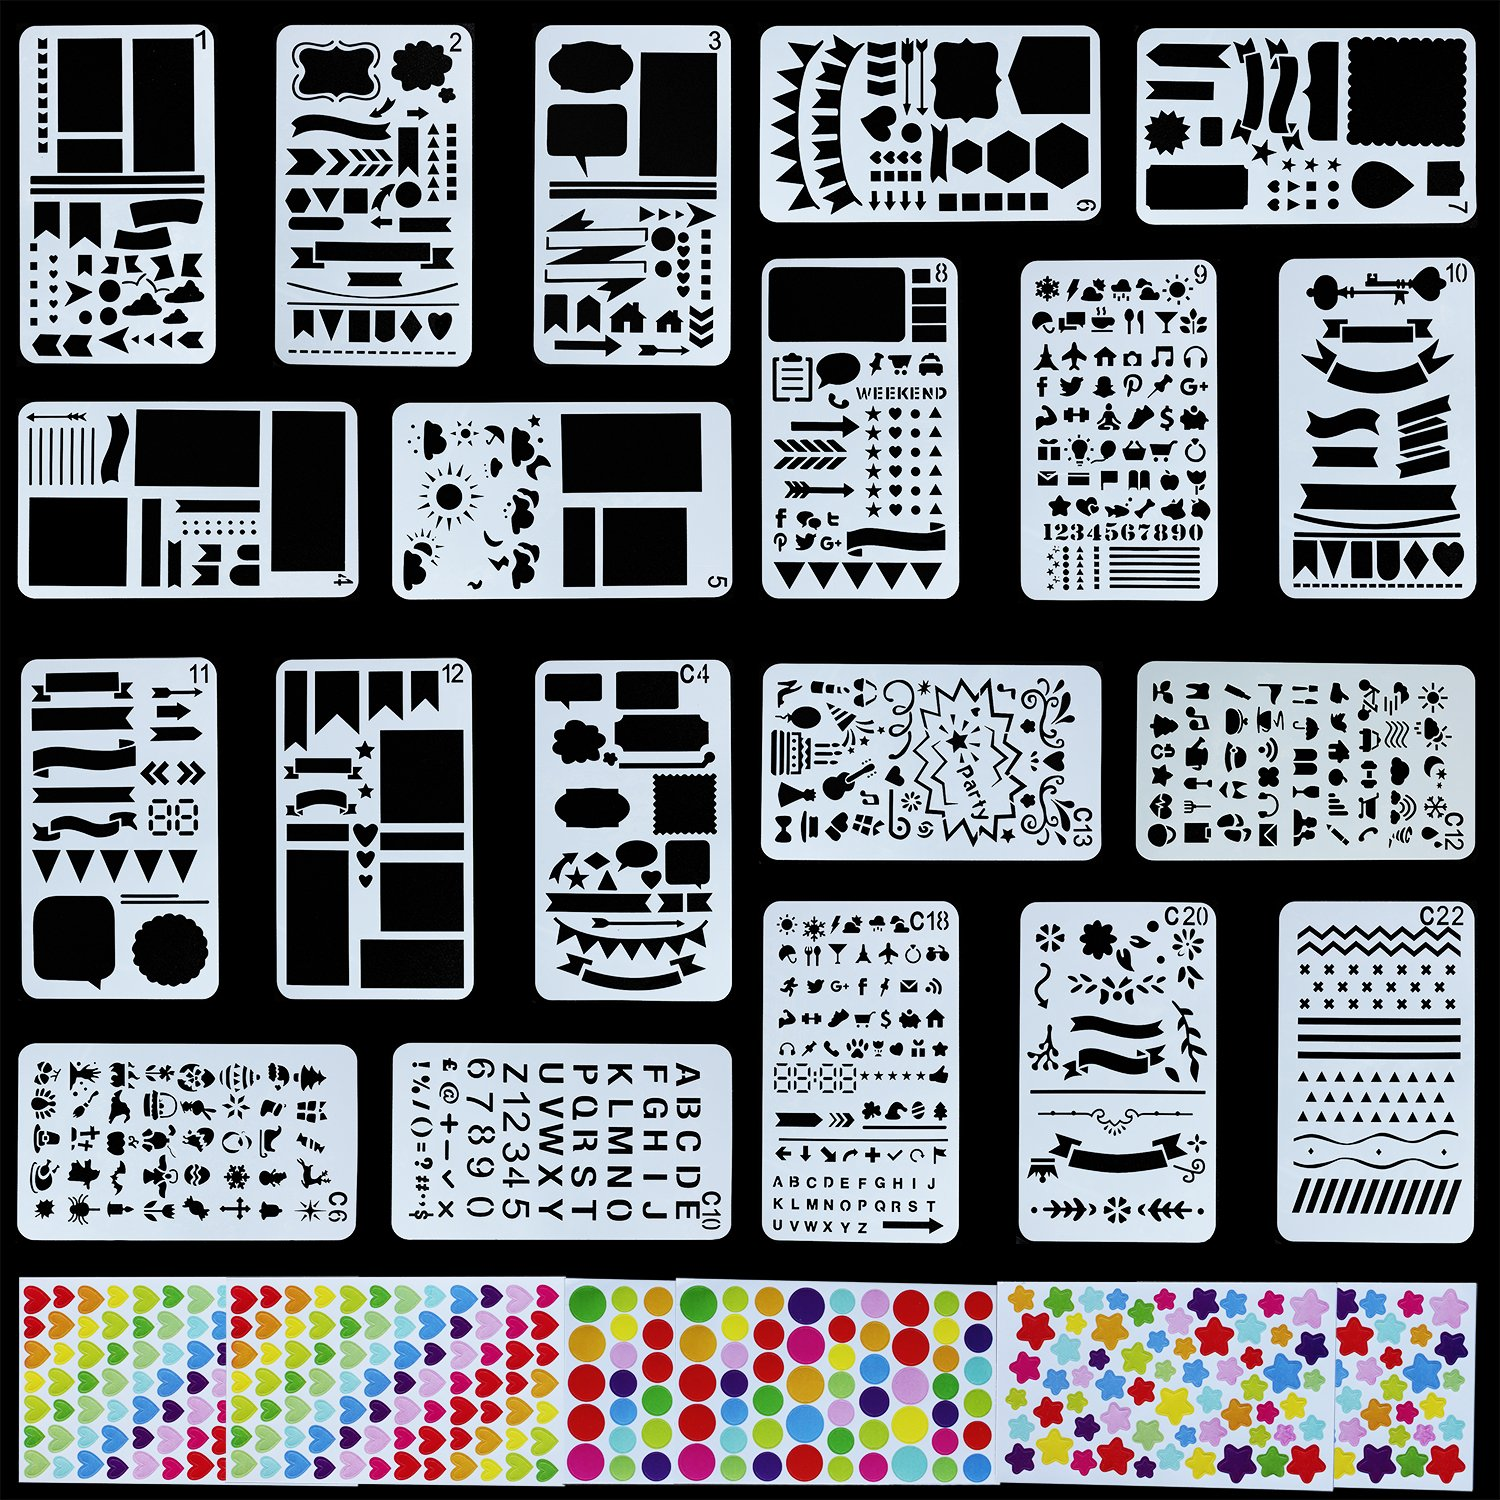 20 Pcs Bullet Journal Stencil + 6 Sheets Stichers Set Plastic Template DIY Drawing Planner for Journal/Notebook/Diary/Scrapbook/Art Craft Projects/Schedule Book DIY Drawing Template, 4x7 Inch(26 PCS) MIKISHINE